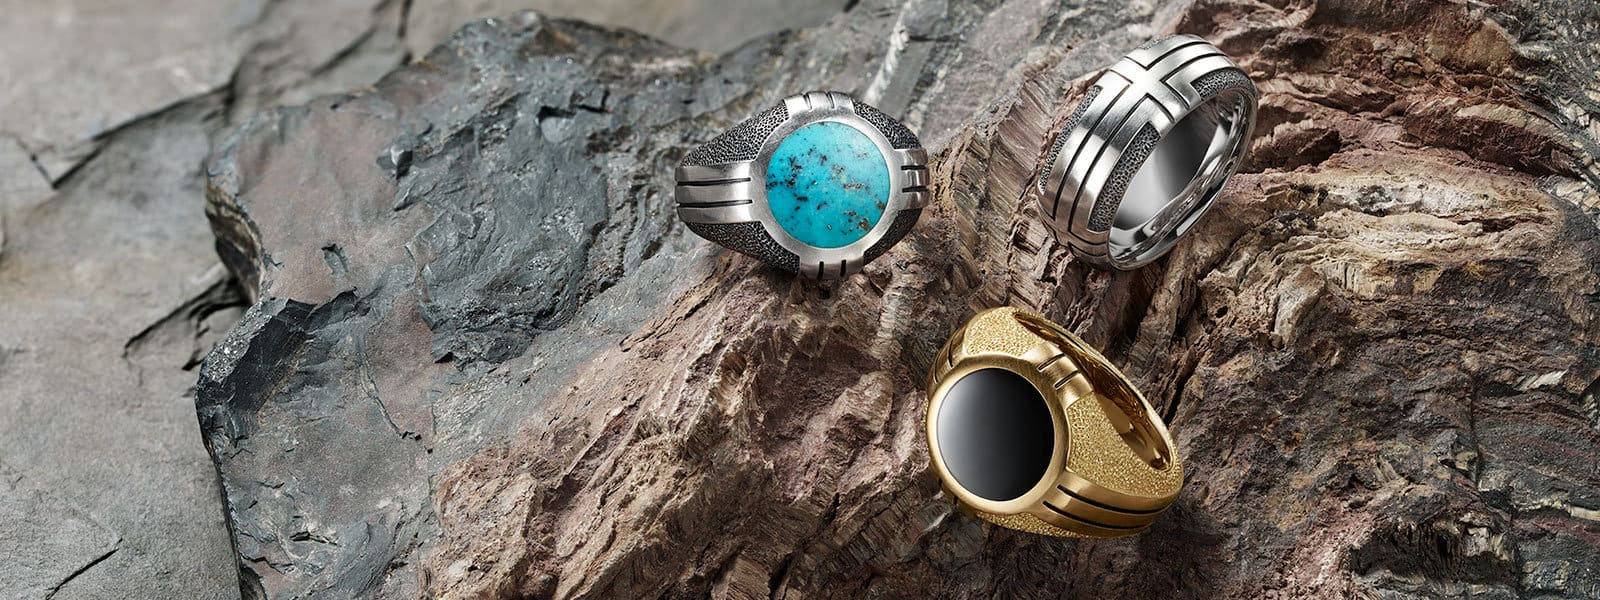 Southwest signet rings in sterling silver with turquoise, 18K yellow gold with black onyx and a Southwest band in sterling silver arranged on the ridges of a multicolored stone.